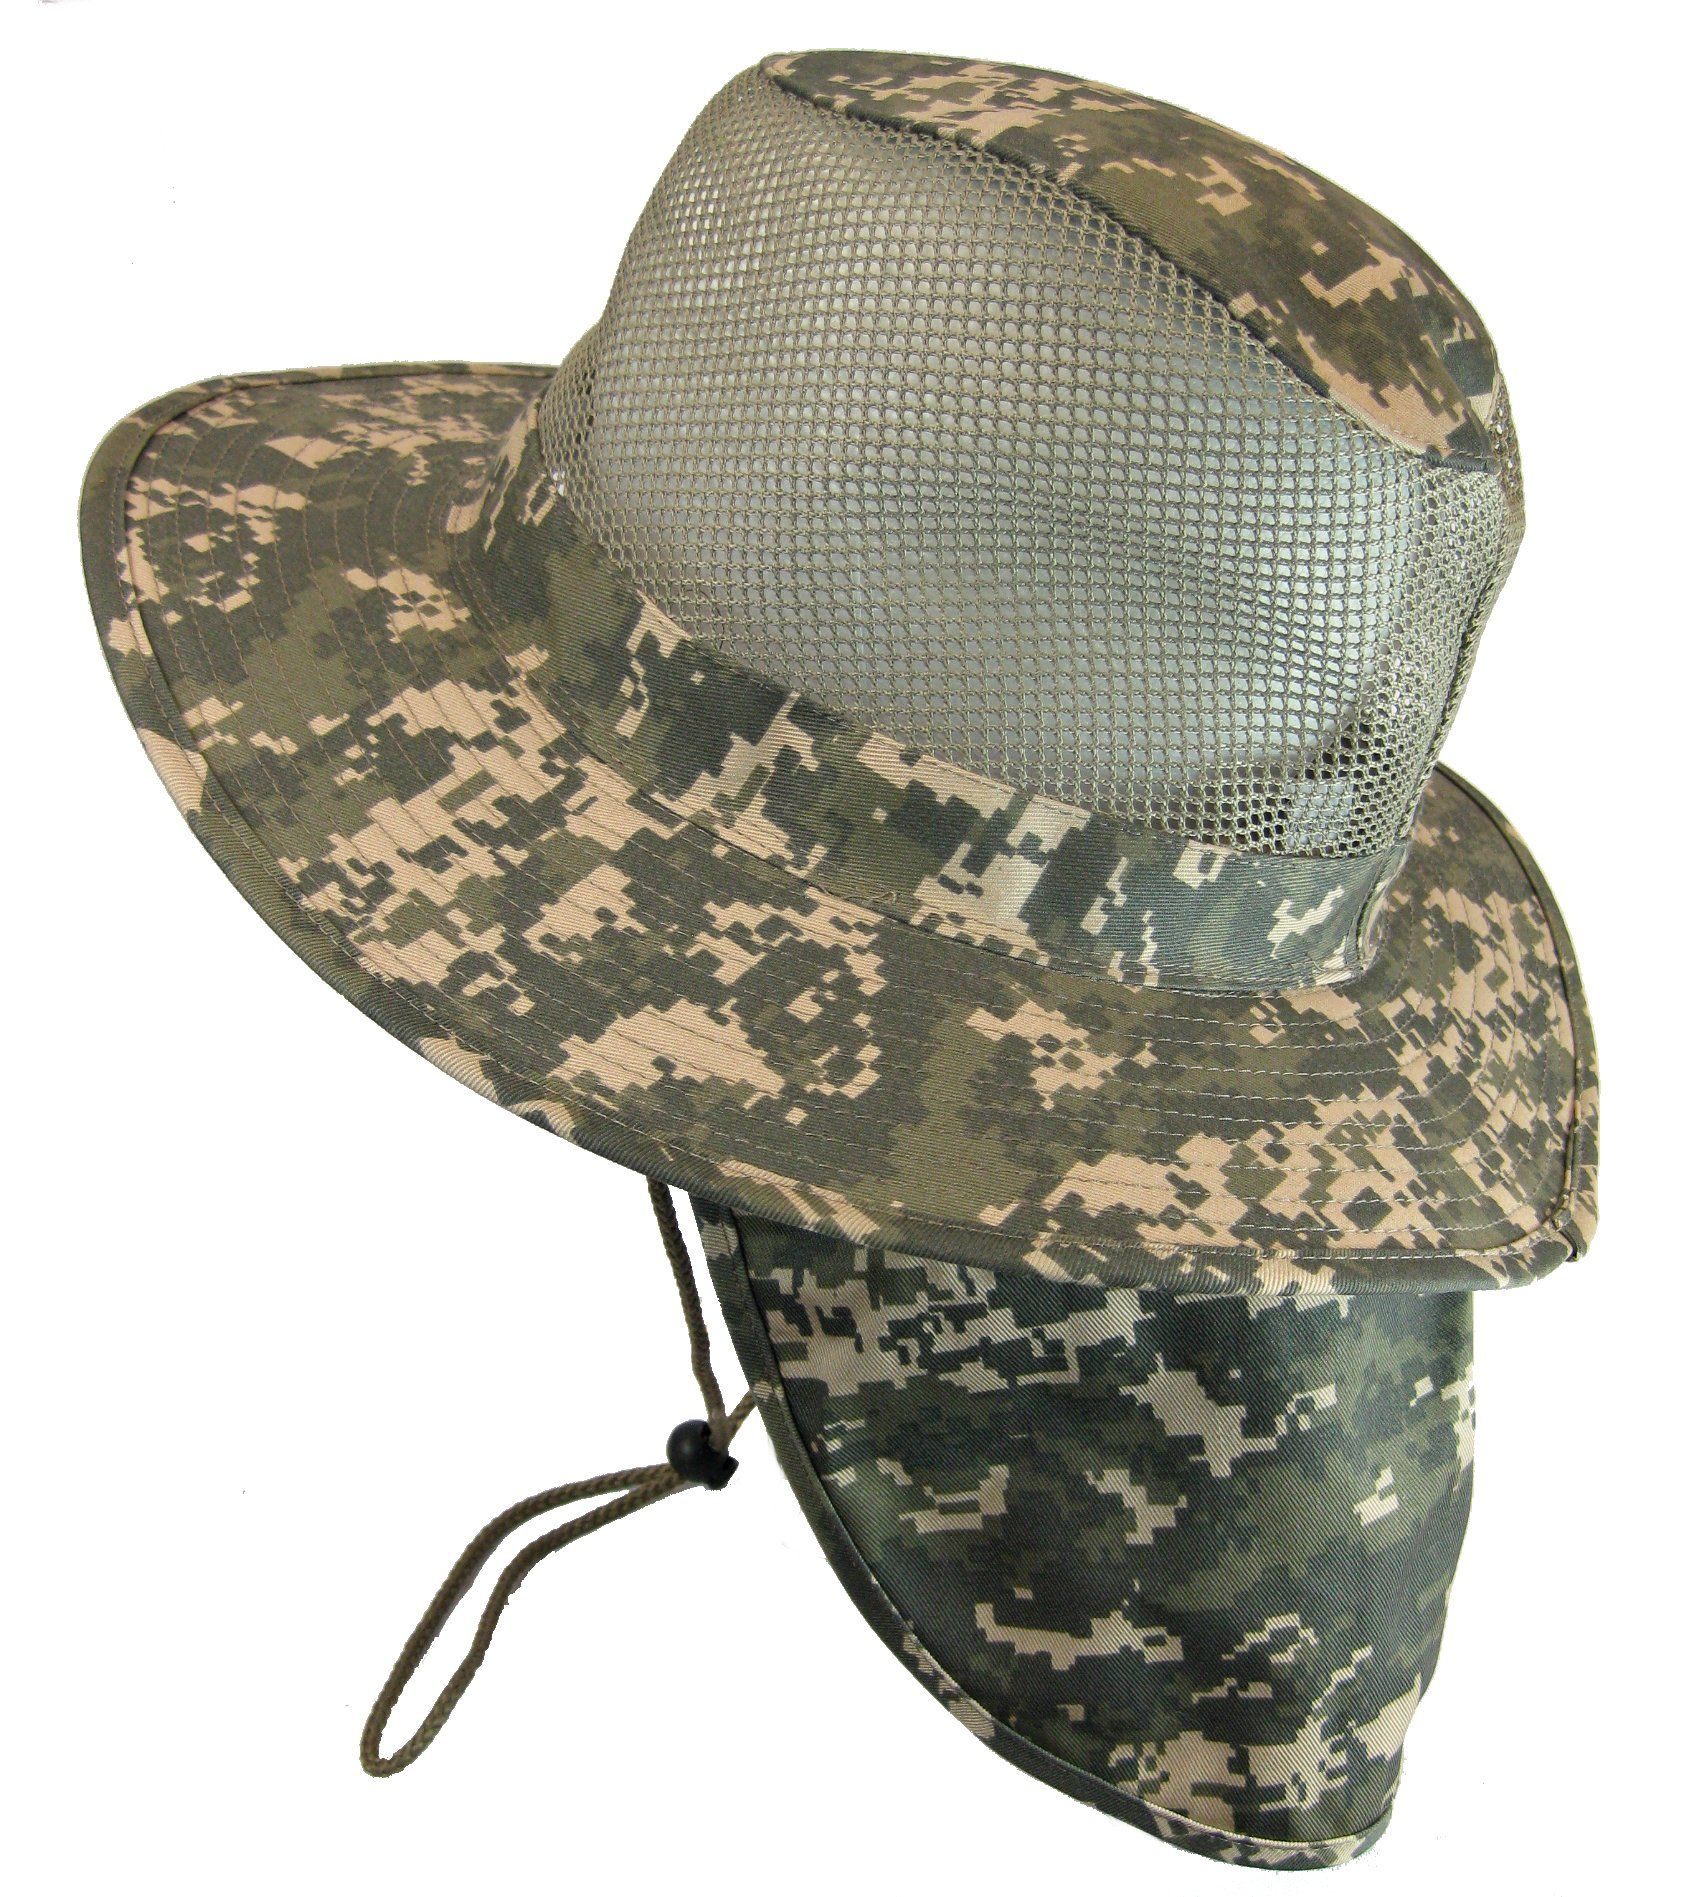 a3c59f5b514 Cool Mesh Military Camouflage Boonie Bush Safari Outdoor Fishing Hiking  Hunting Boating Brim Hat Sun Cap